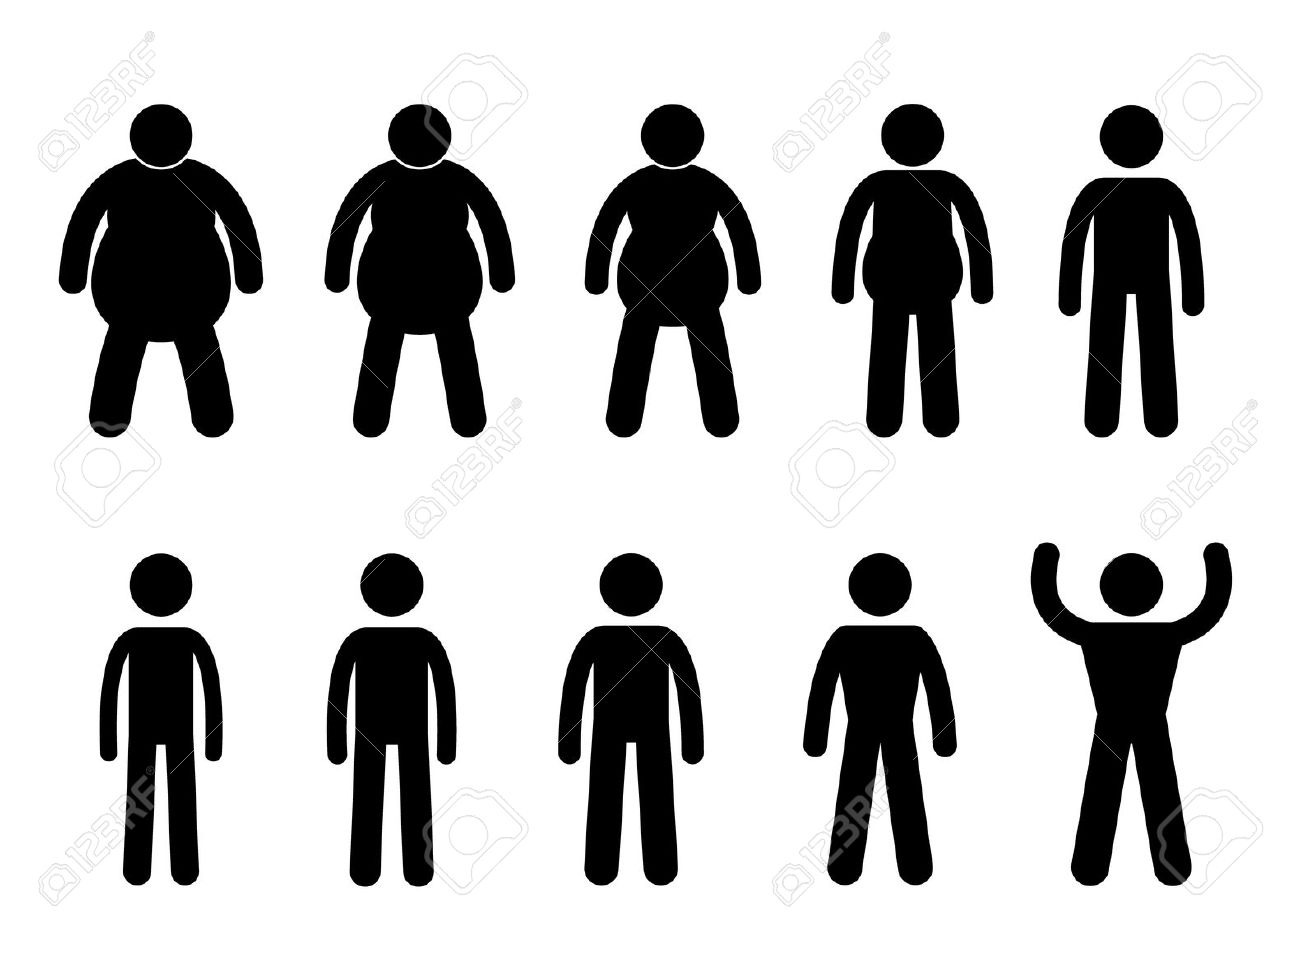 11965723-Fat-to-Thin-Process-and-Thin-to-Muscular-Concept-Icon-Symbol-Sign-Pictogram-Stock-Vector.jpg